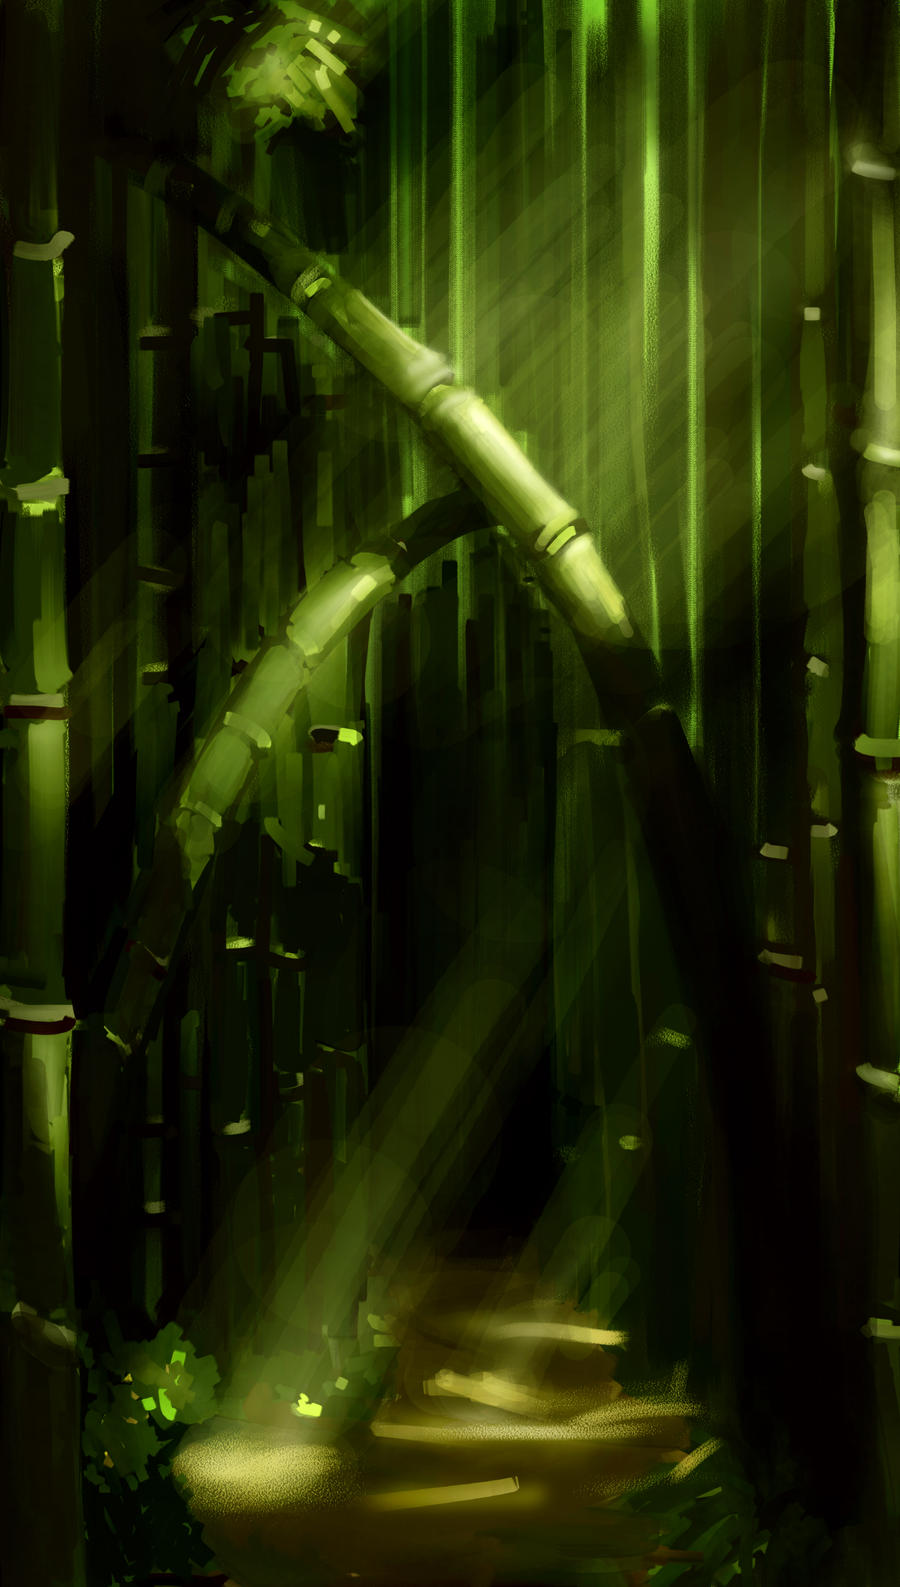 Bamboo Forest by haohaohayashi